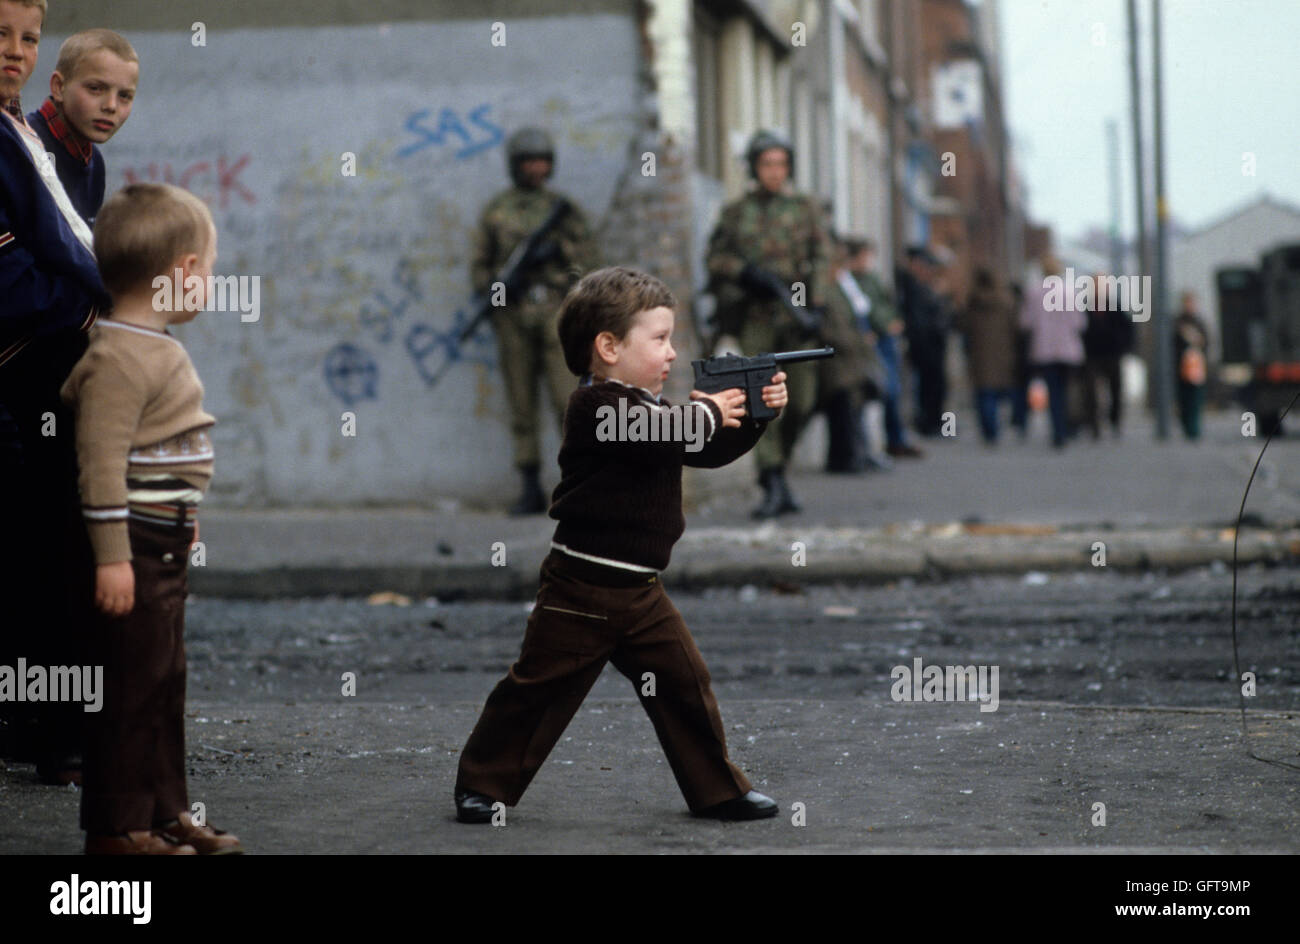 Kids children playing guns, during The Troubles Belfast Northern Ireland  1980s HOMER SYKES ARCHIVE - Stock Image